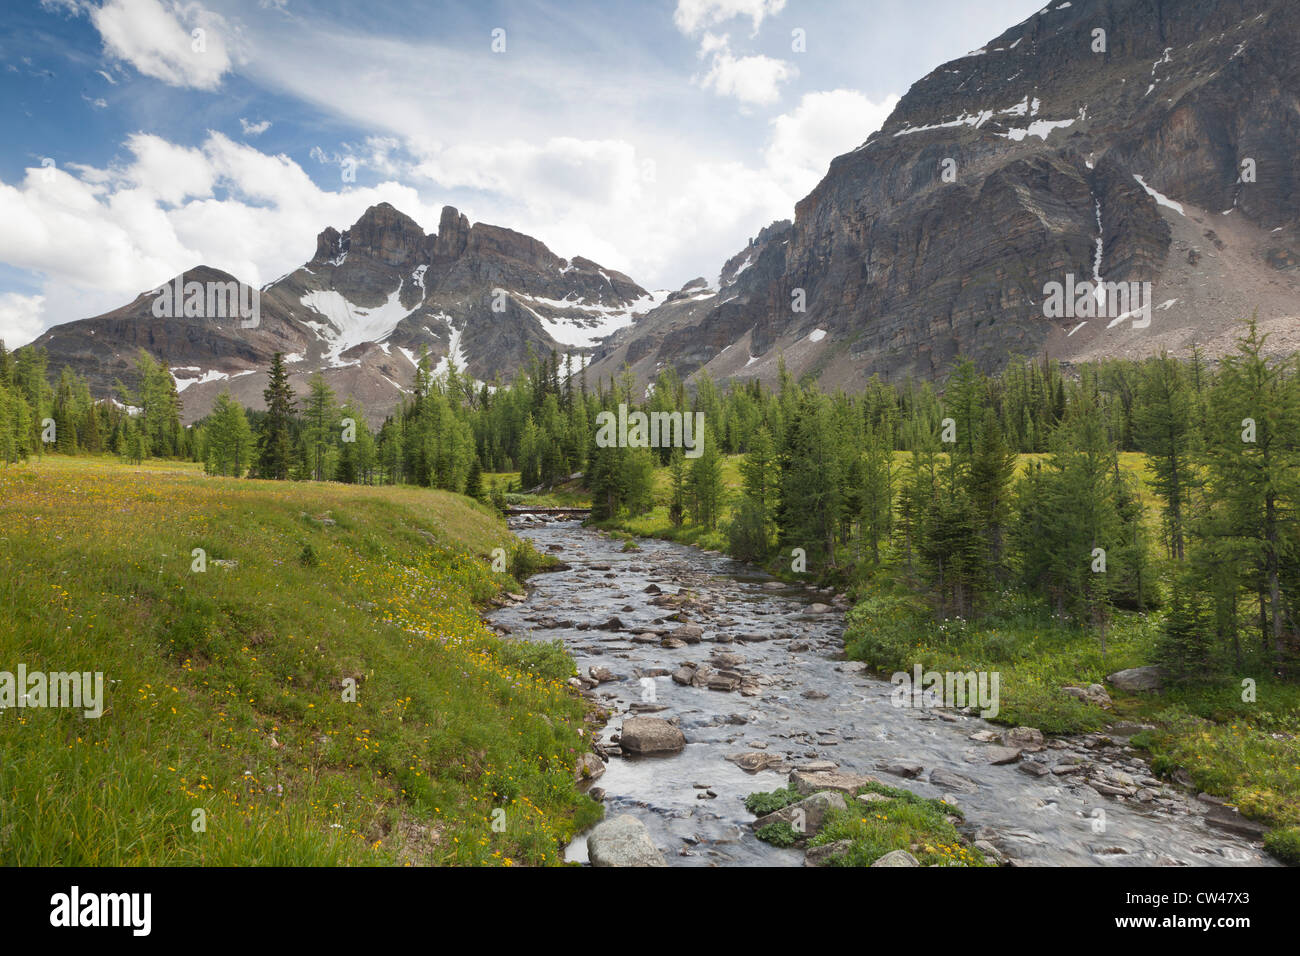 Canada, Mount Assiniboine Provincial Park, Gog Lake meadows, The Towers and Naiset Point, Gog lake outlet Stock Photo